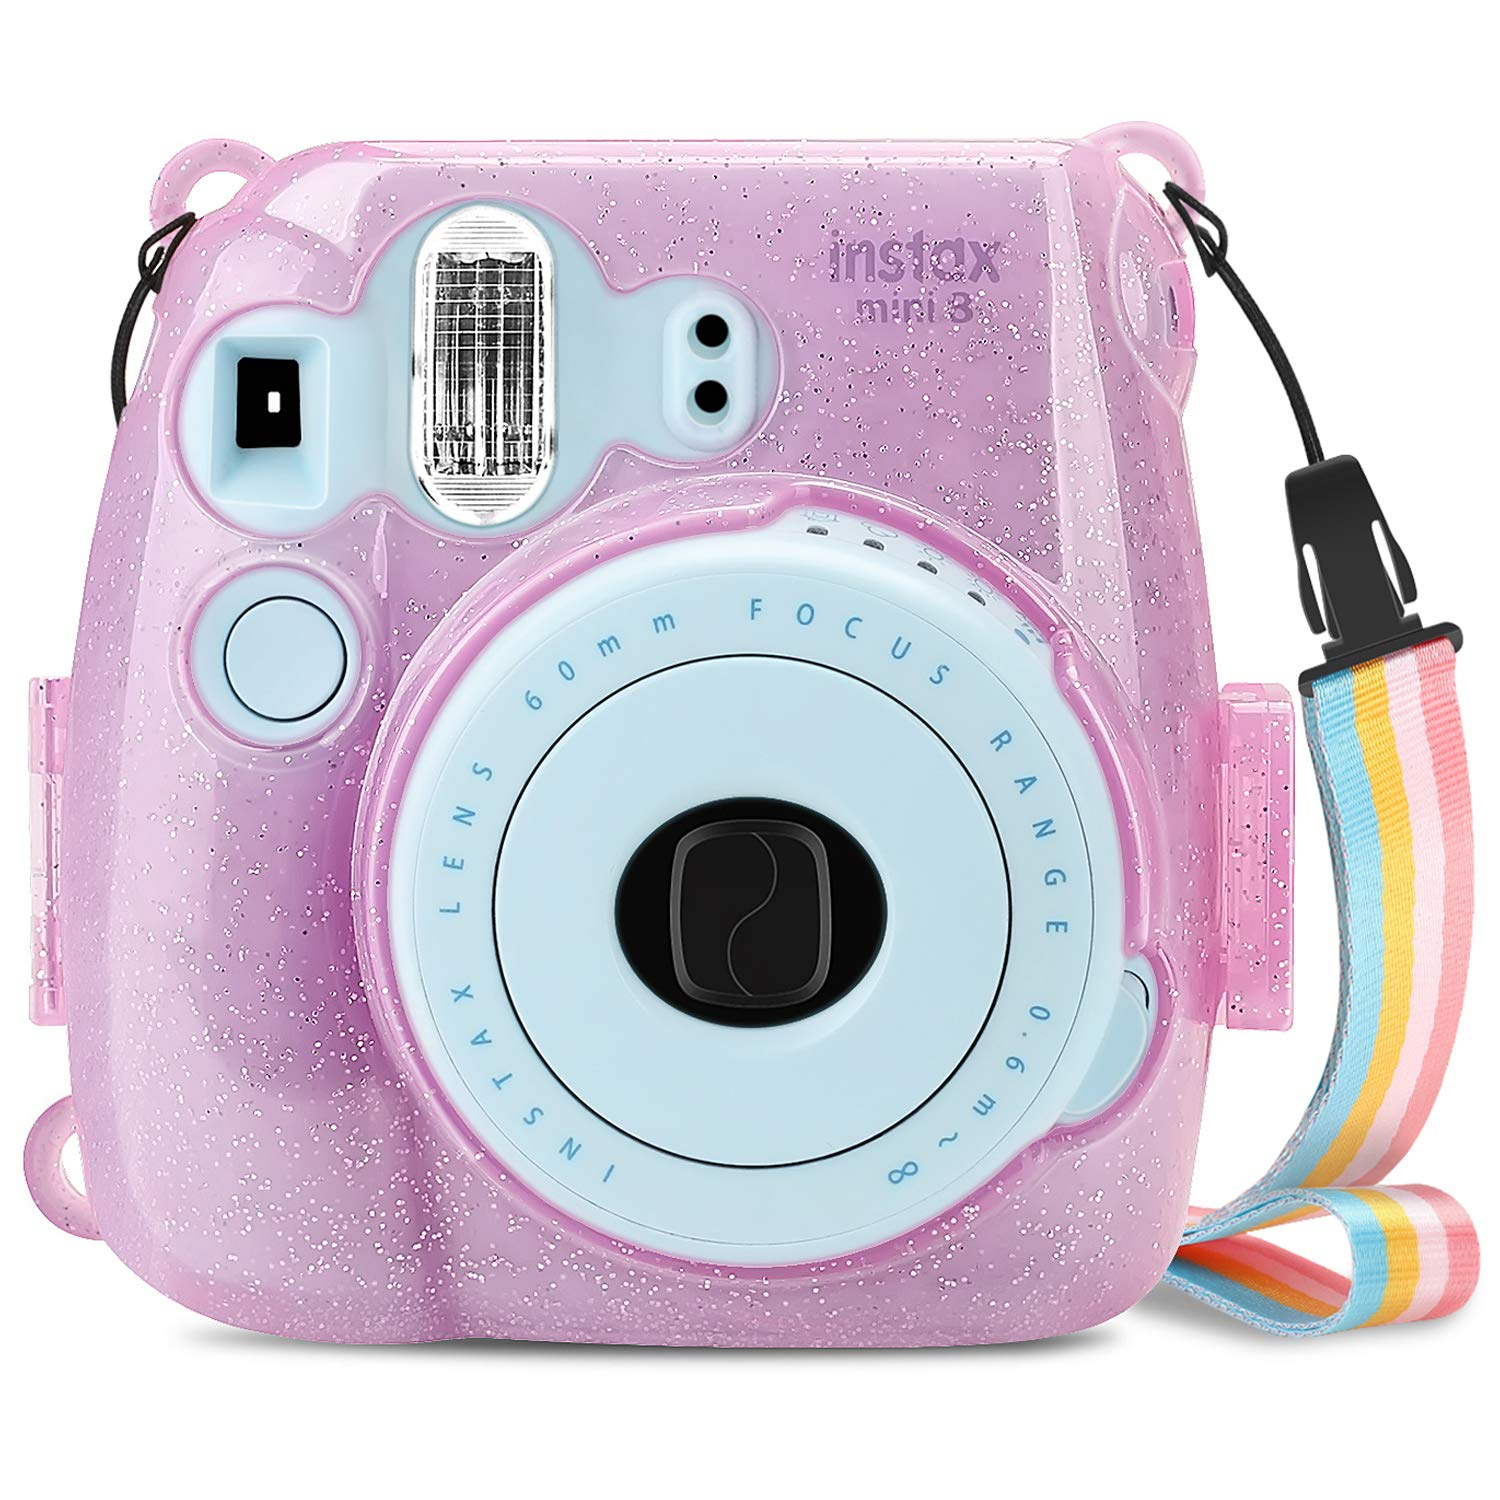 more photos abea2 6d11f Fintie Protective Clear Case for Fujifilm Instax Mini 8 Mini 8+ Mini 9  Instant Camera - Crystal Hard PVC Cover with Removable Rainbow Shoulder  Strap, ...